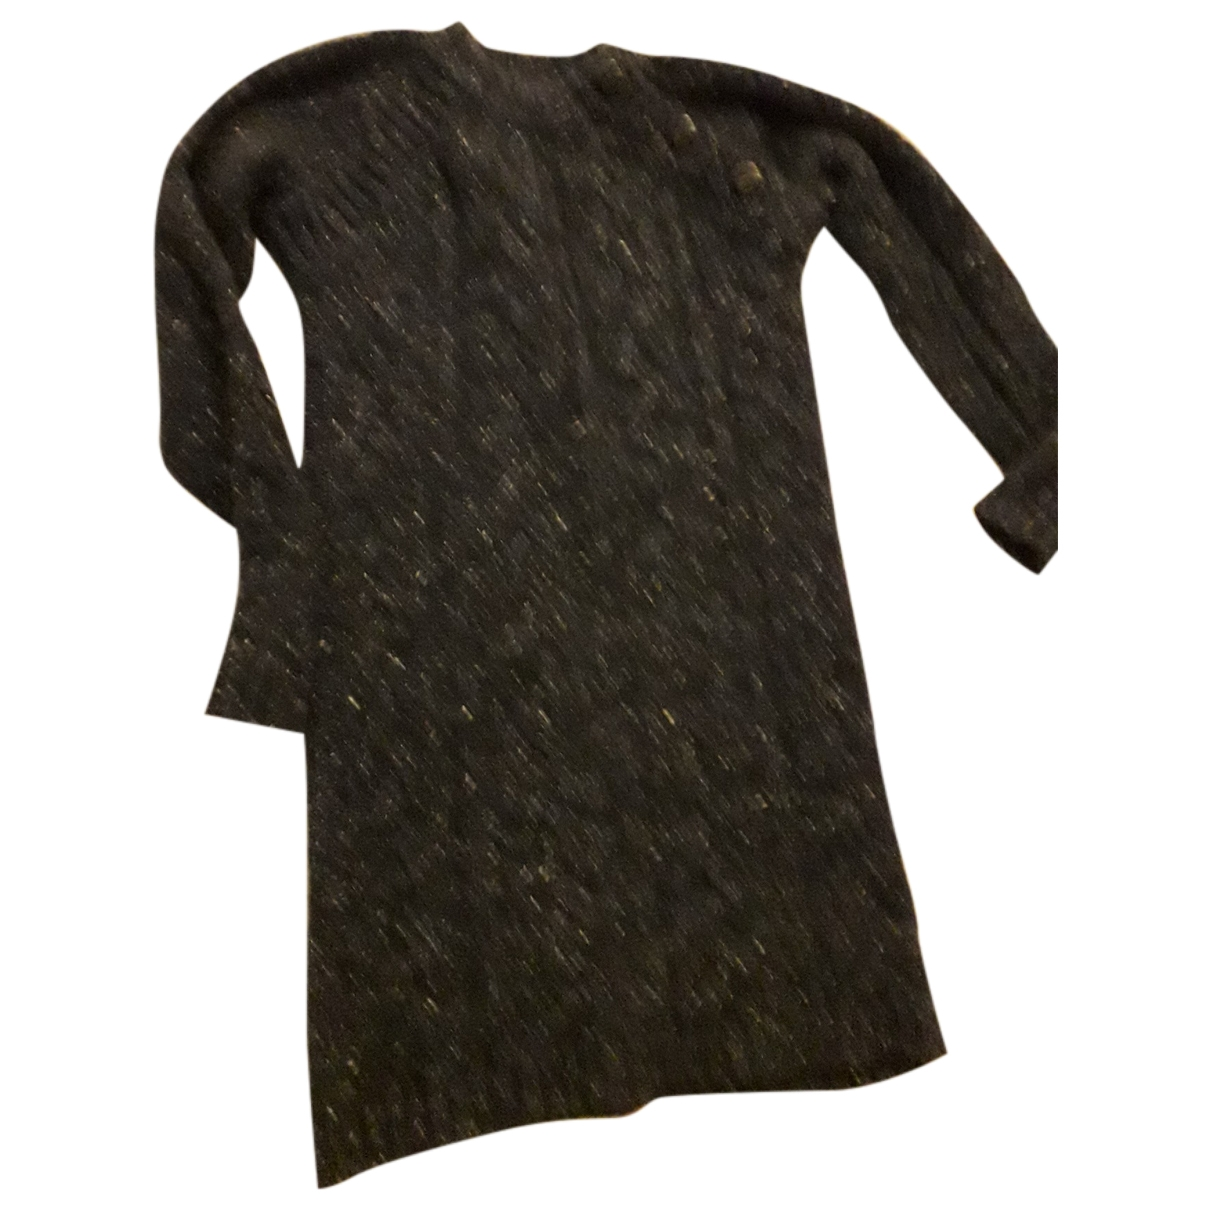 Maison Ullens \N Anthracite Cashmere dress for Women XS International